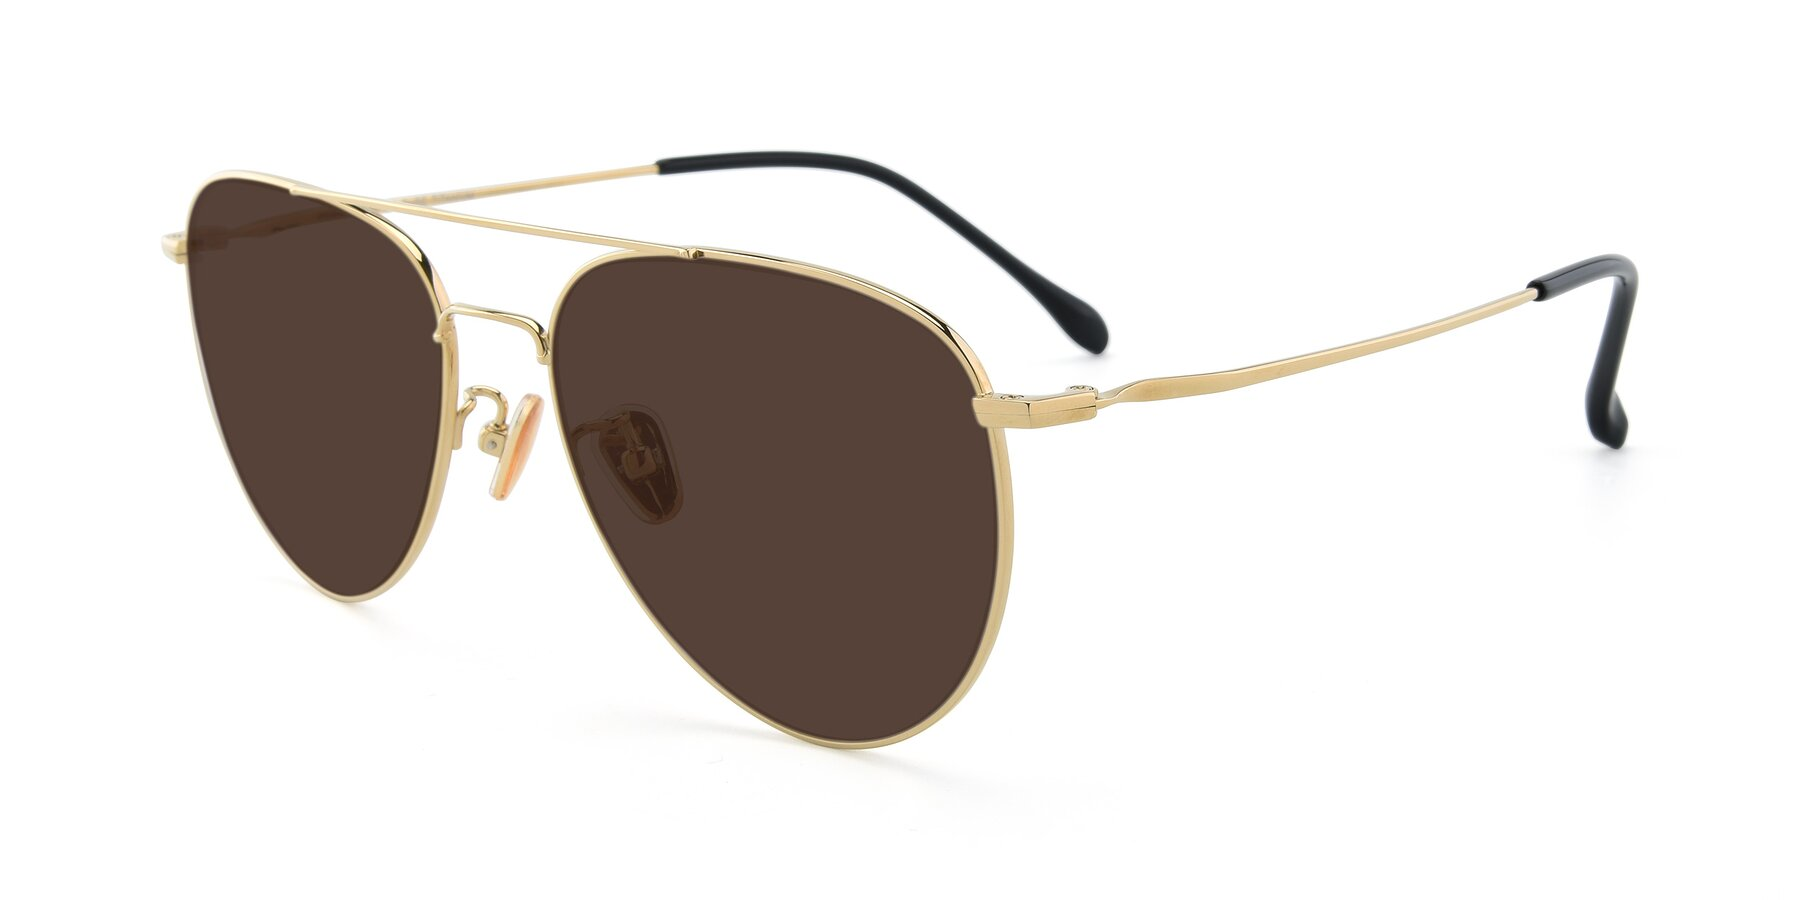 Angle of 80060 in Gold with Brown Tinted Lenses